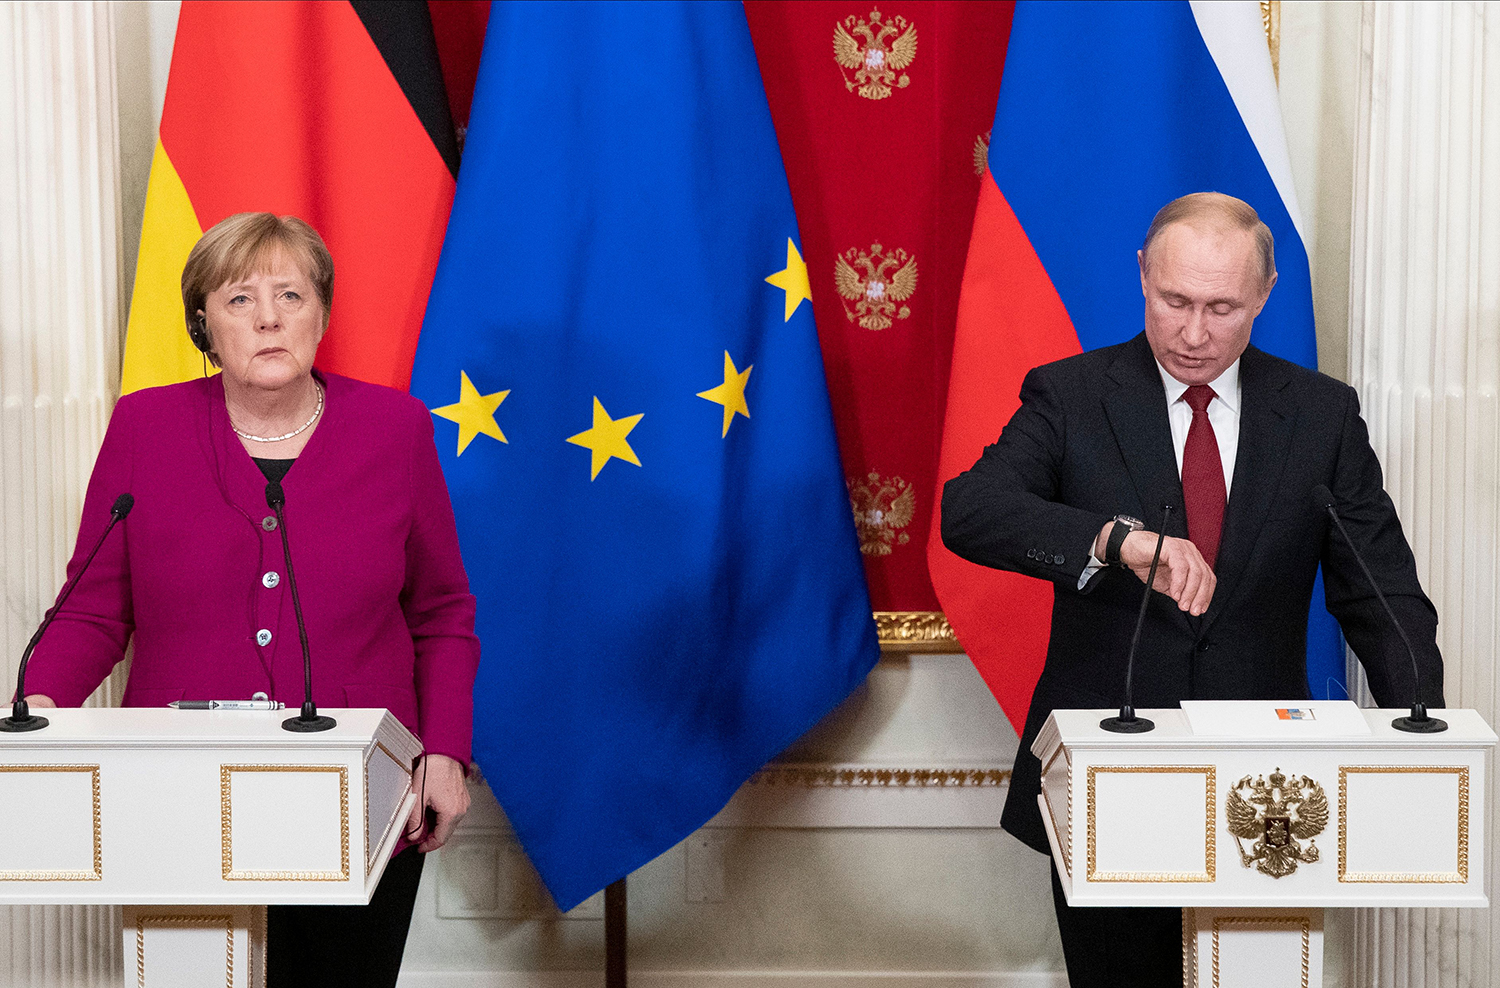 Russia's President Vladimir Putin and Germany's Chancellor Angela Merkel attend a joint news conference after their meeting at the Kremlin in Moscow on Jan. 11. PAVEL GOLOVKIN/POOL/AFP via Getty Images